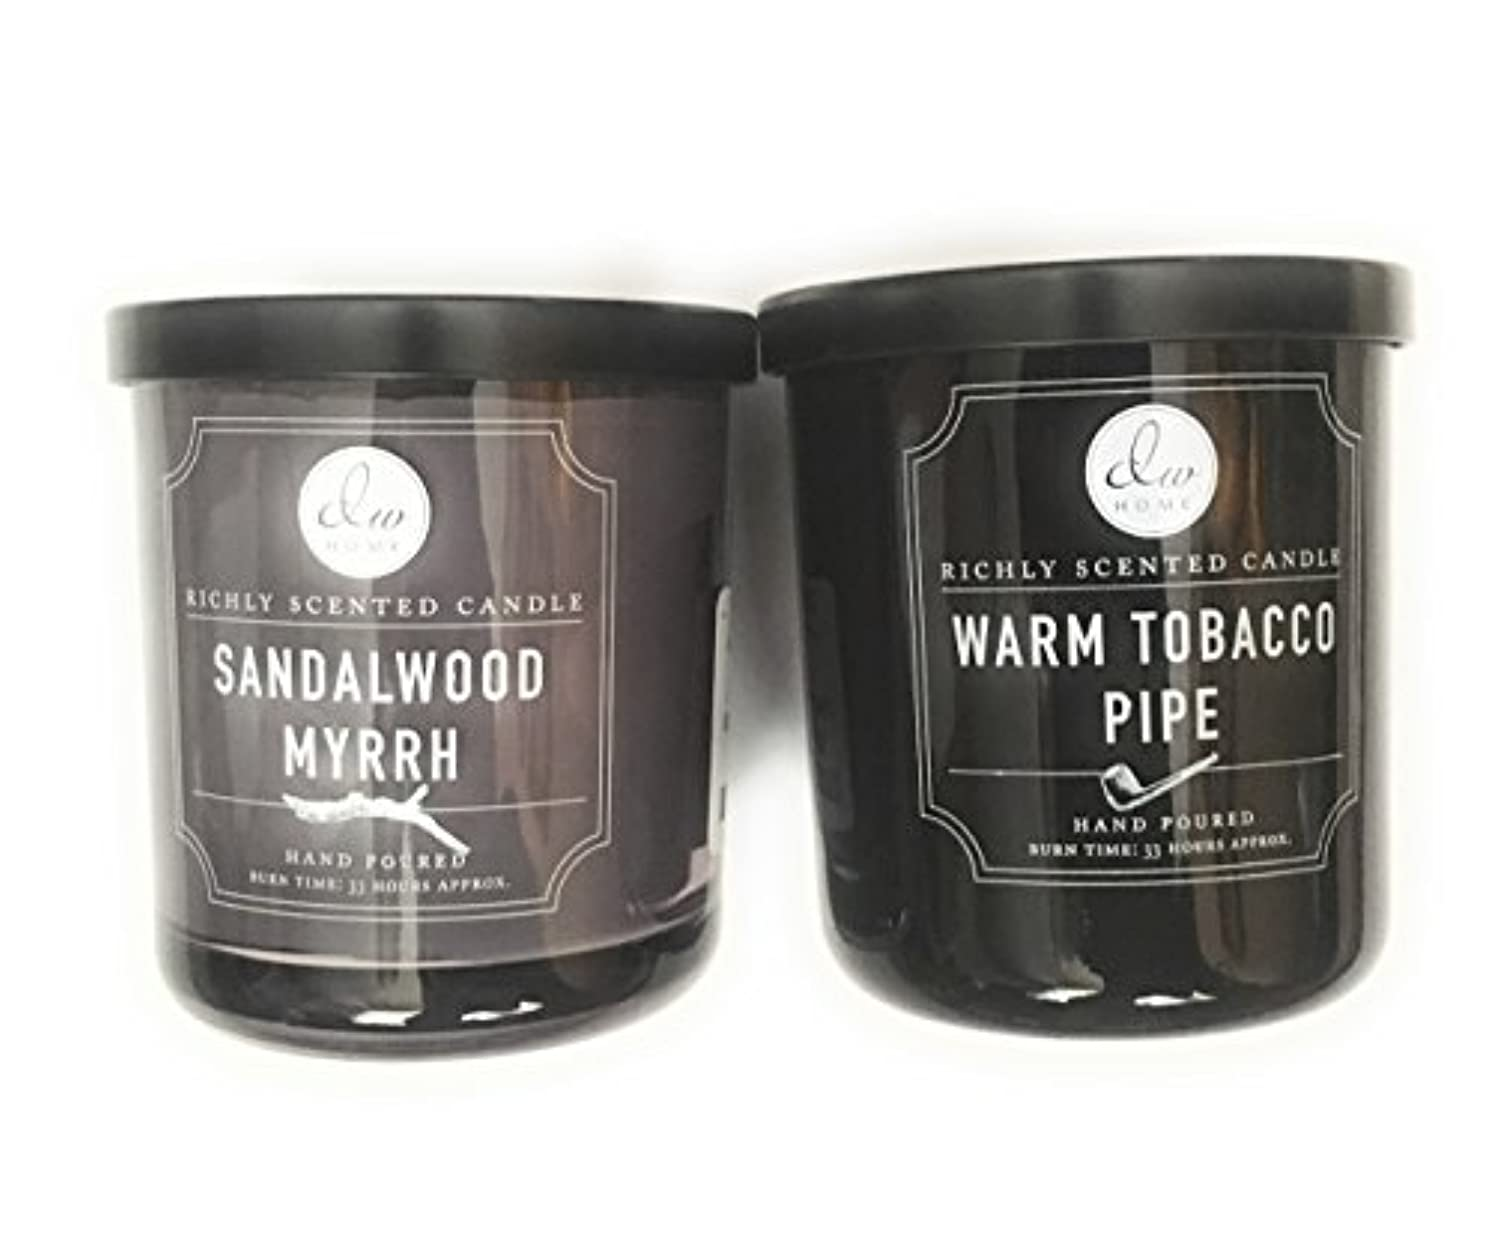 DW Home Candle Bundle with a Warm Tobacco Pipe (290ml) Candle and a Sandalwood and Myrrh (290ml) Candle (2 items)